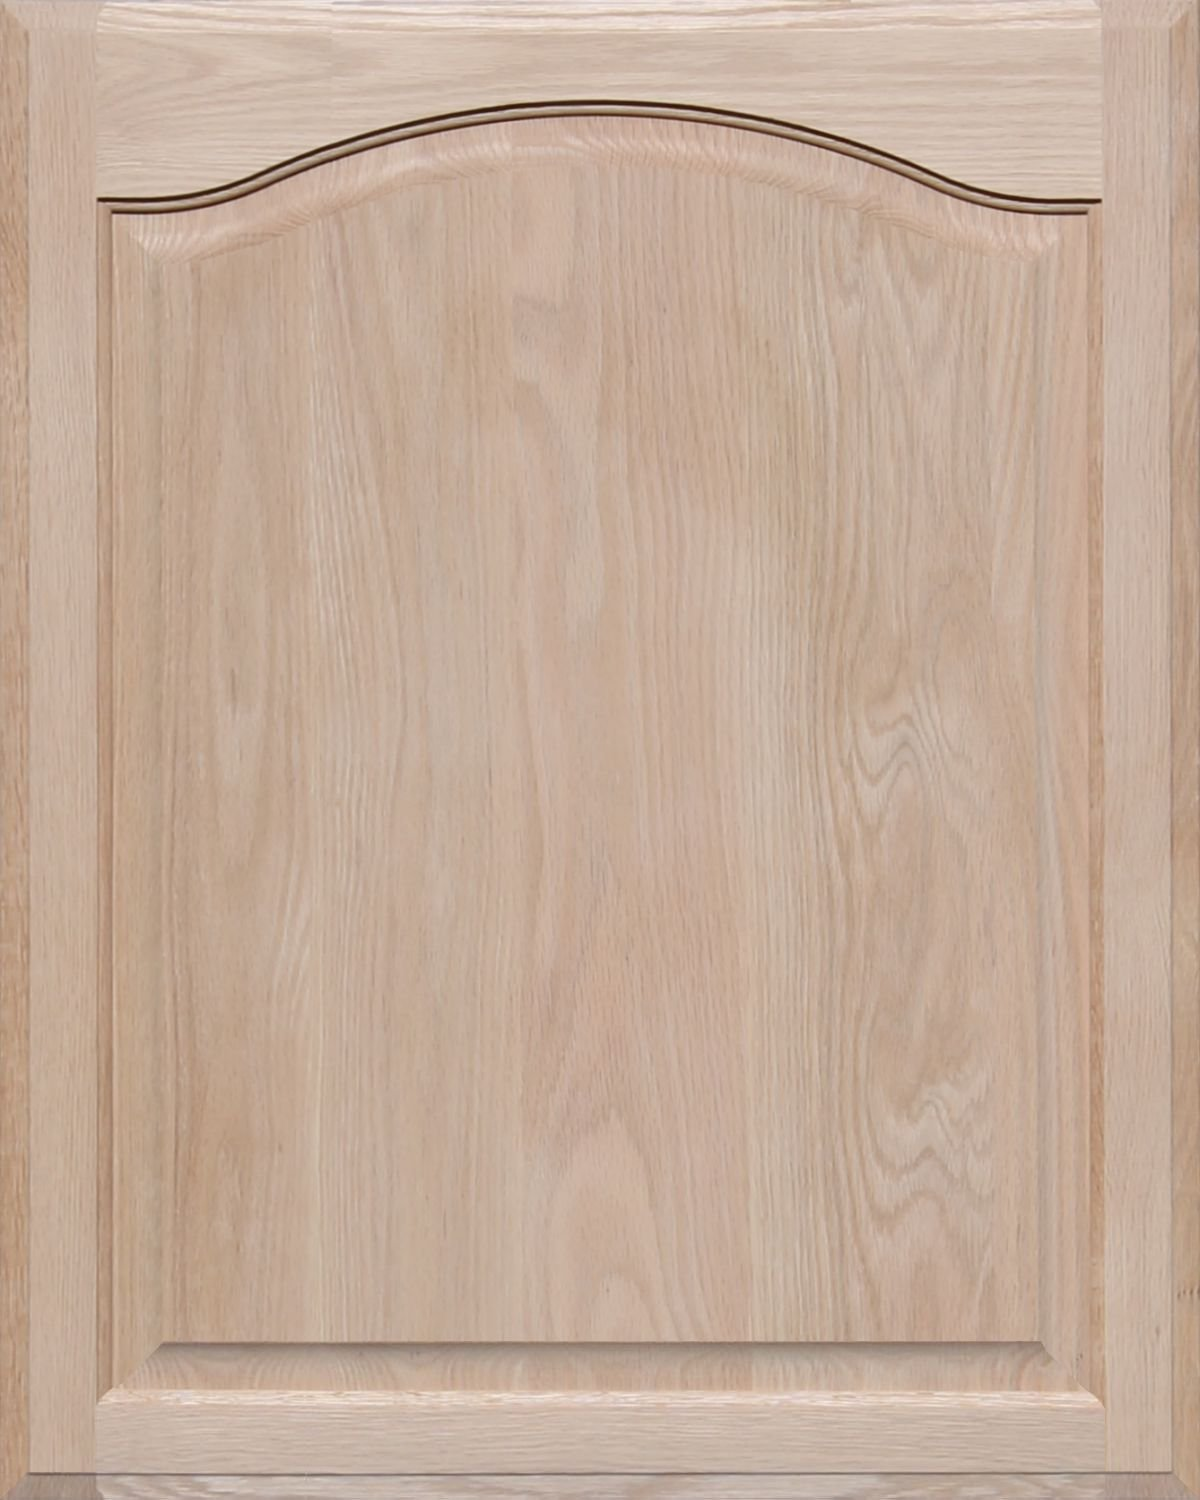 Unfinished Oak Arch Top Cabinet Door by Kendor, 30H x 24W